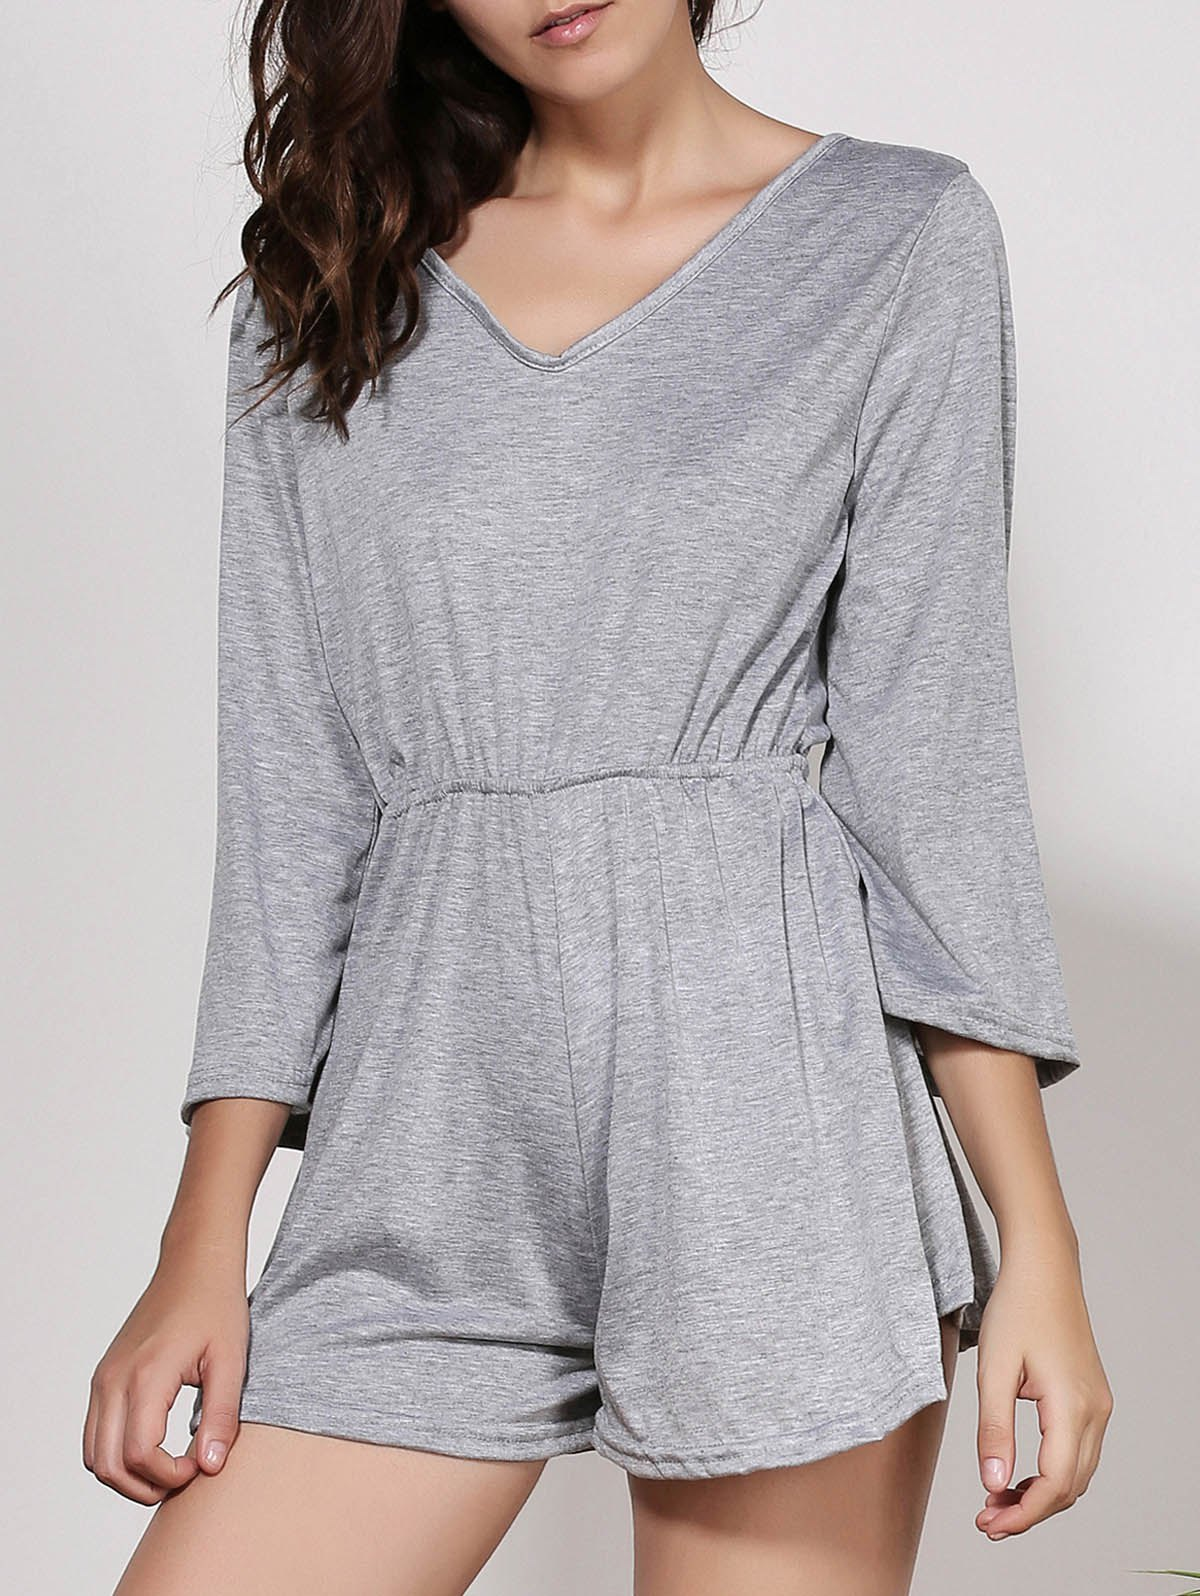 Stylish Women's V-Neck Flare Sleeve Solid Color Backless Romper - GRAY M